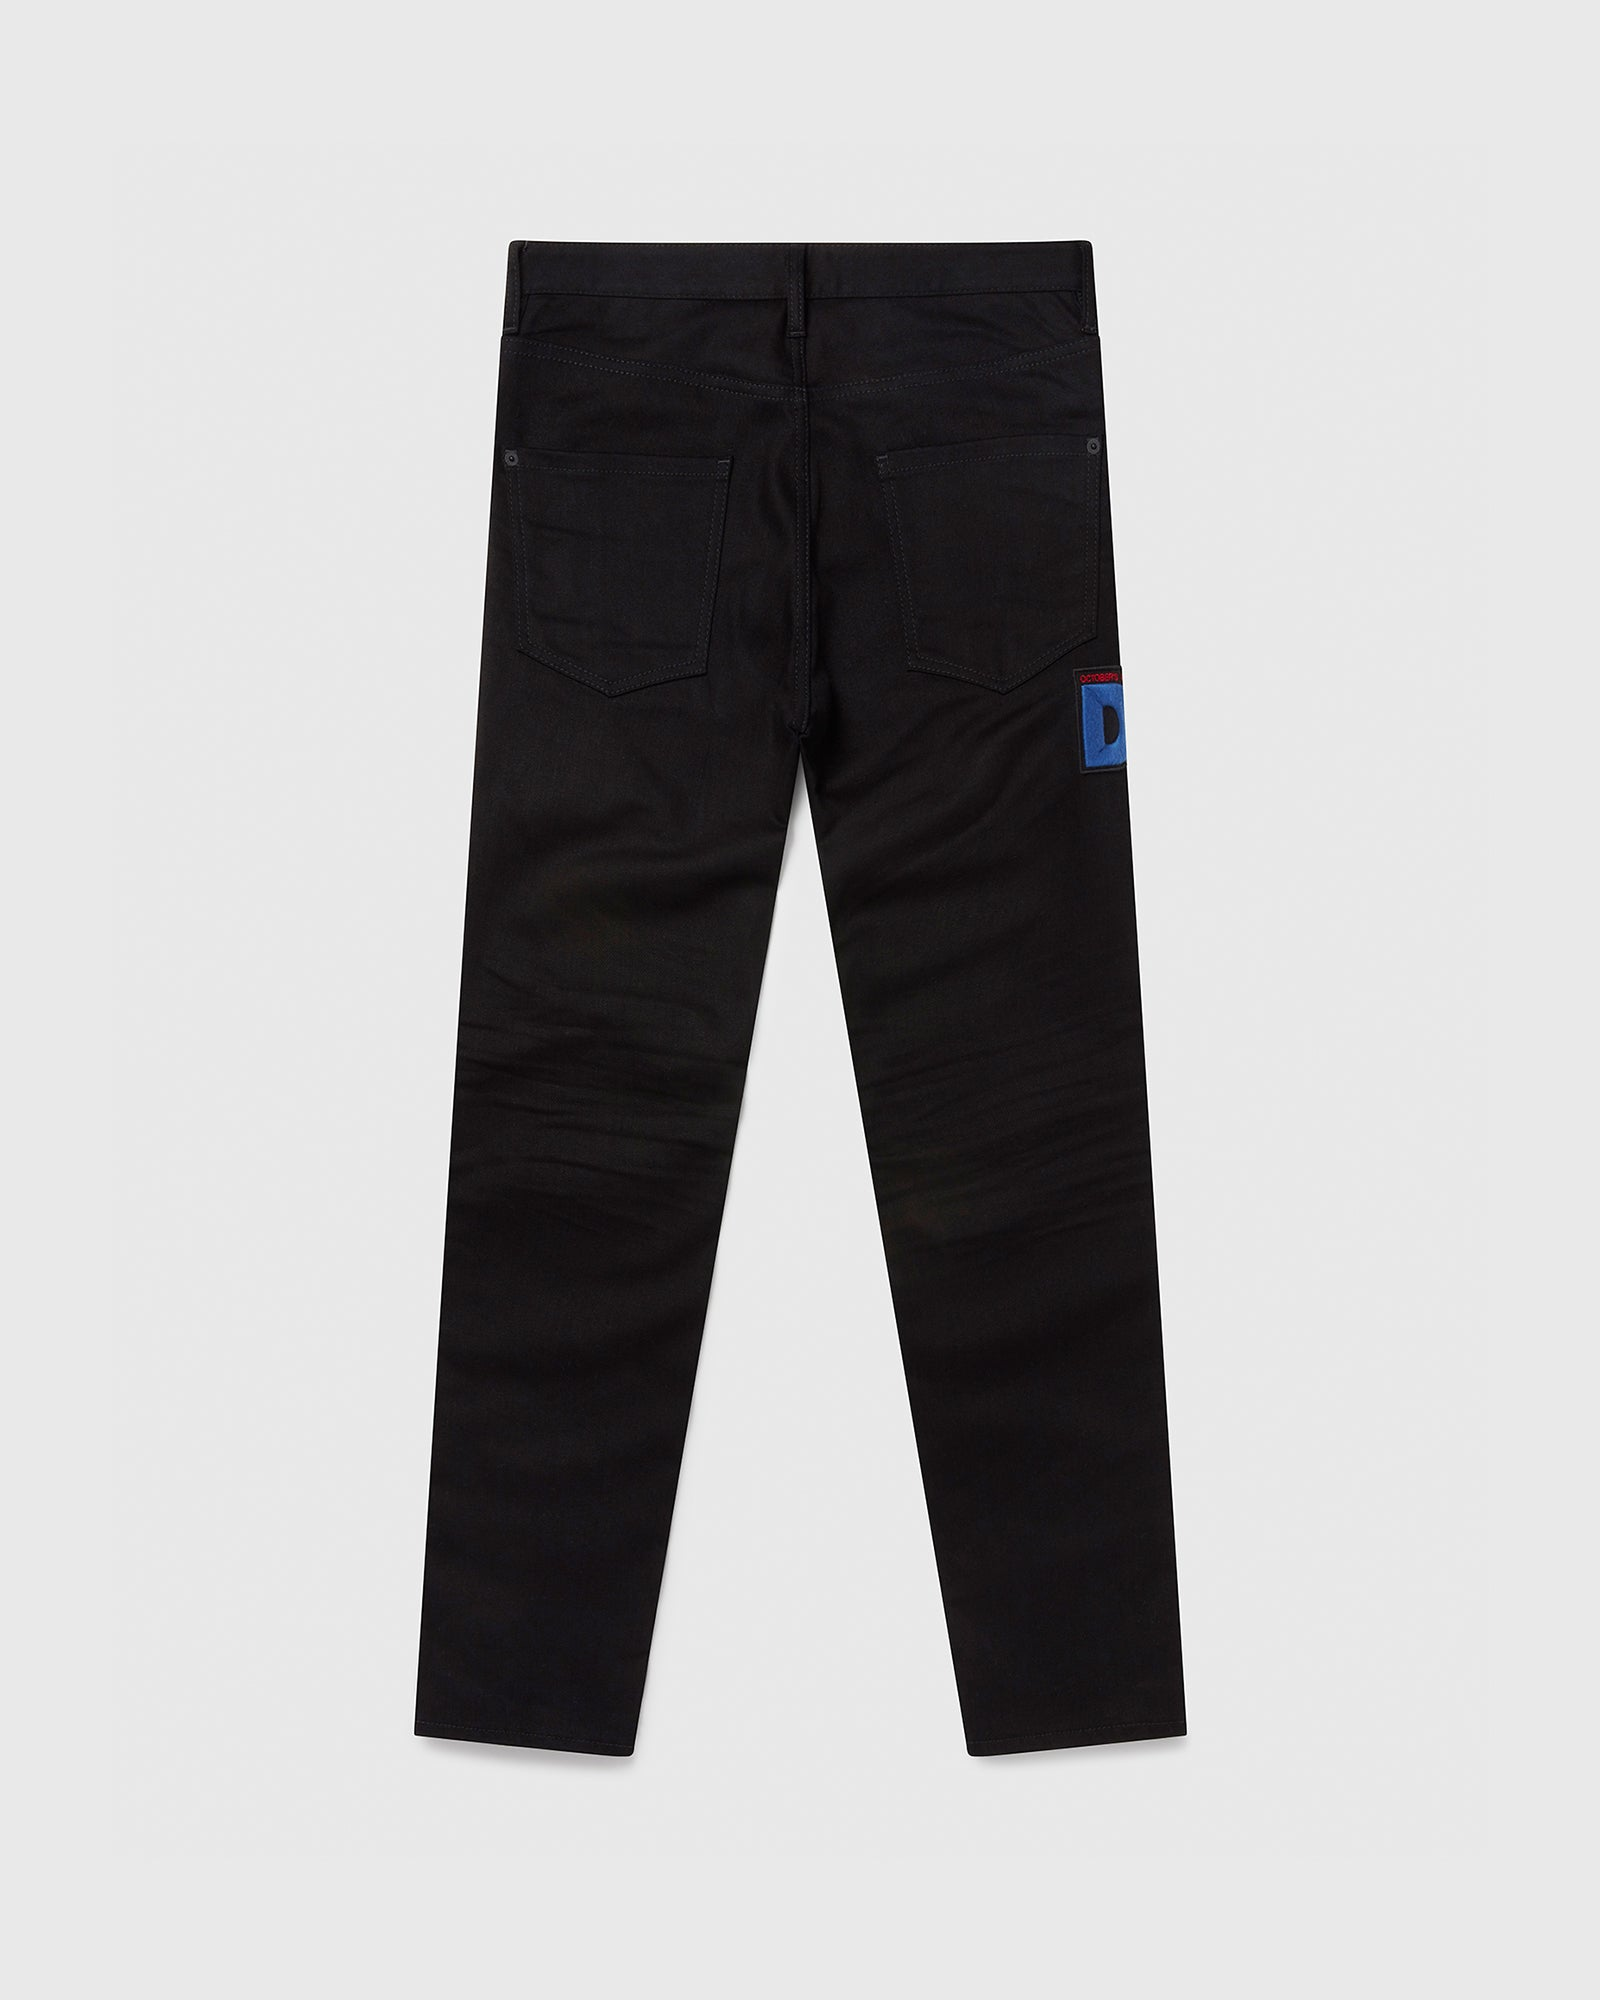 OVO X D2 COOL GUY JEANS - BLACK IMAGE #2